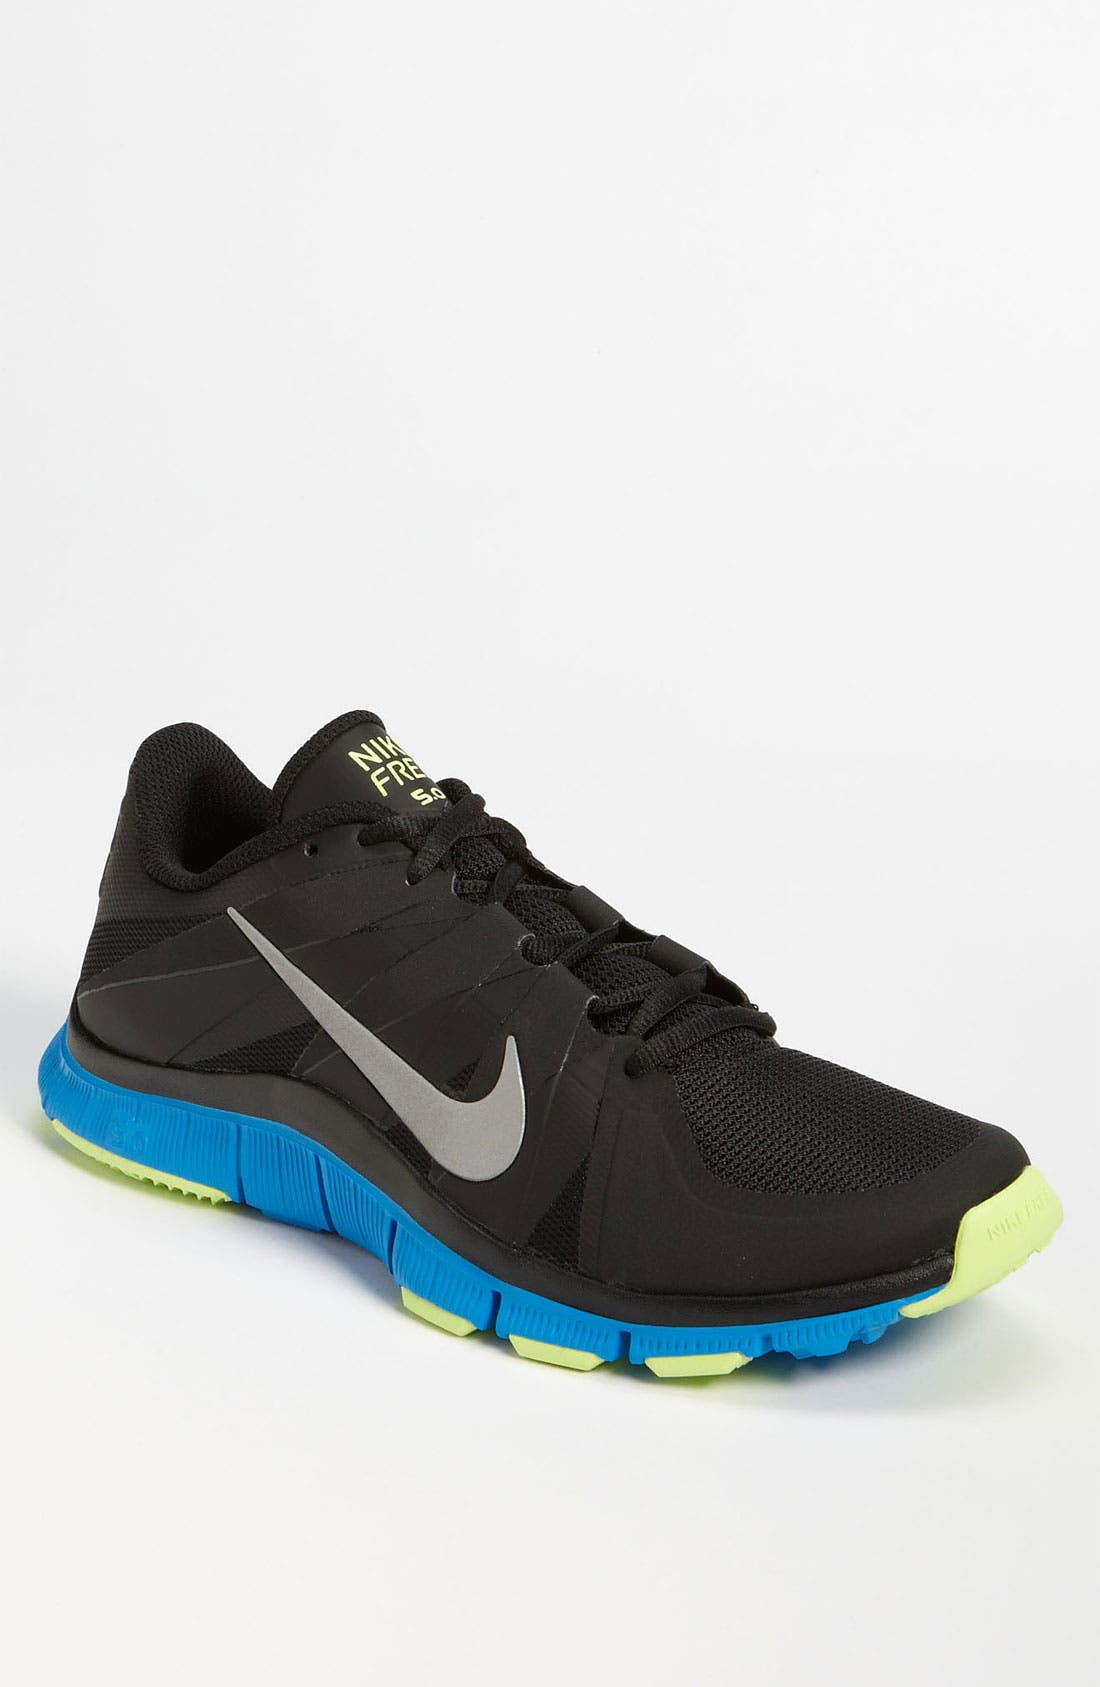 Alternate Image 1 Selected - Nike 'Free Trainer' Training Shoe (Men)